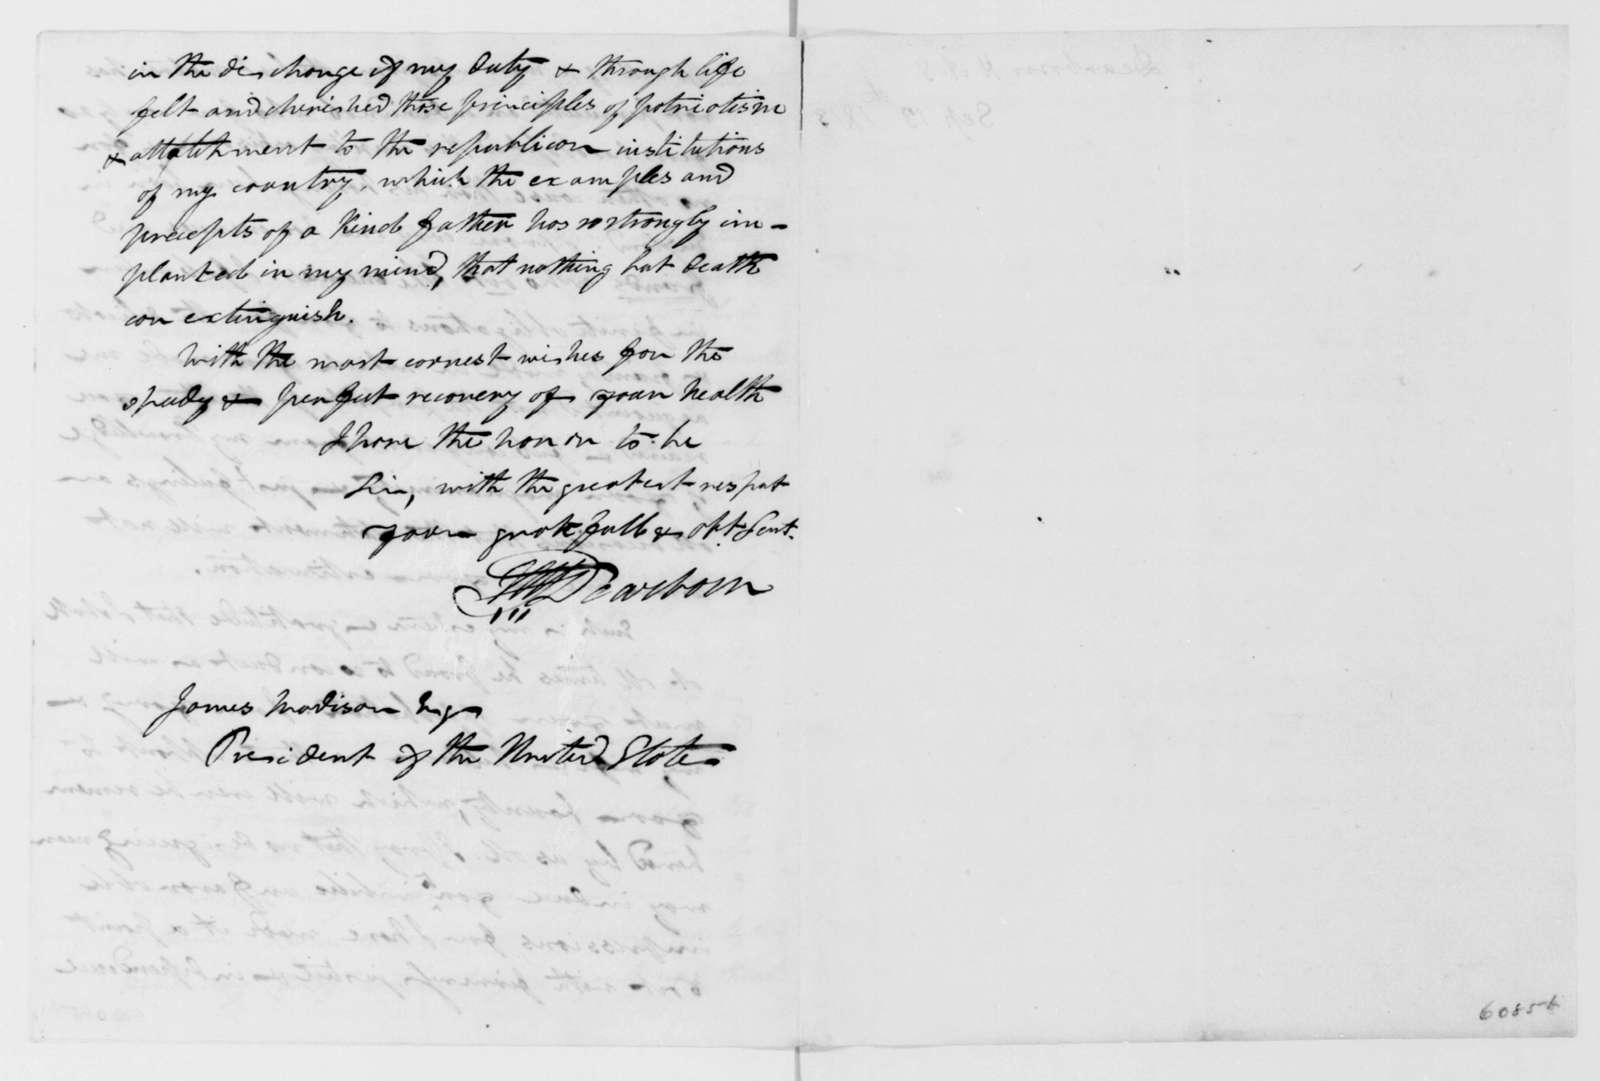 H. A. S. Dearborn to James Madison, September 13, 1813.